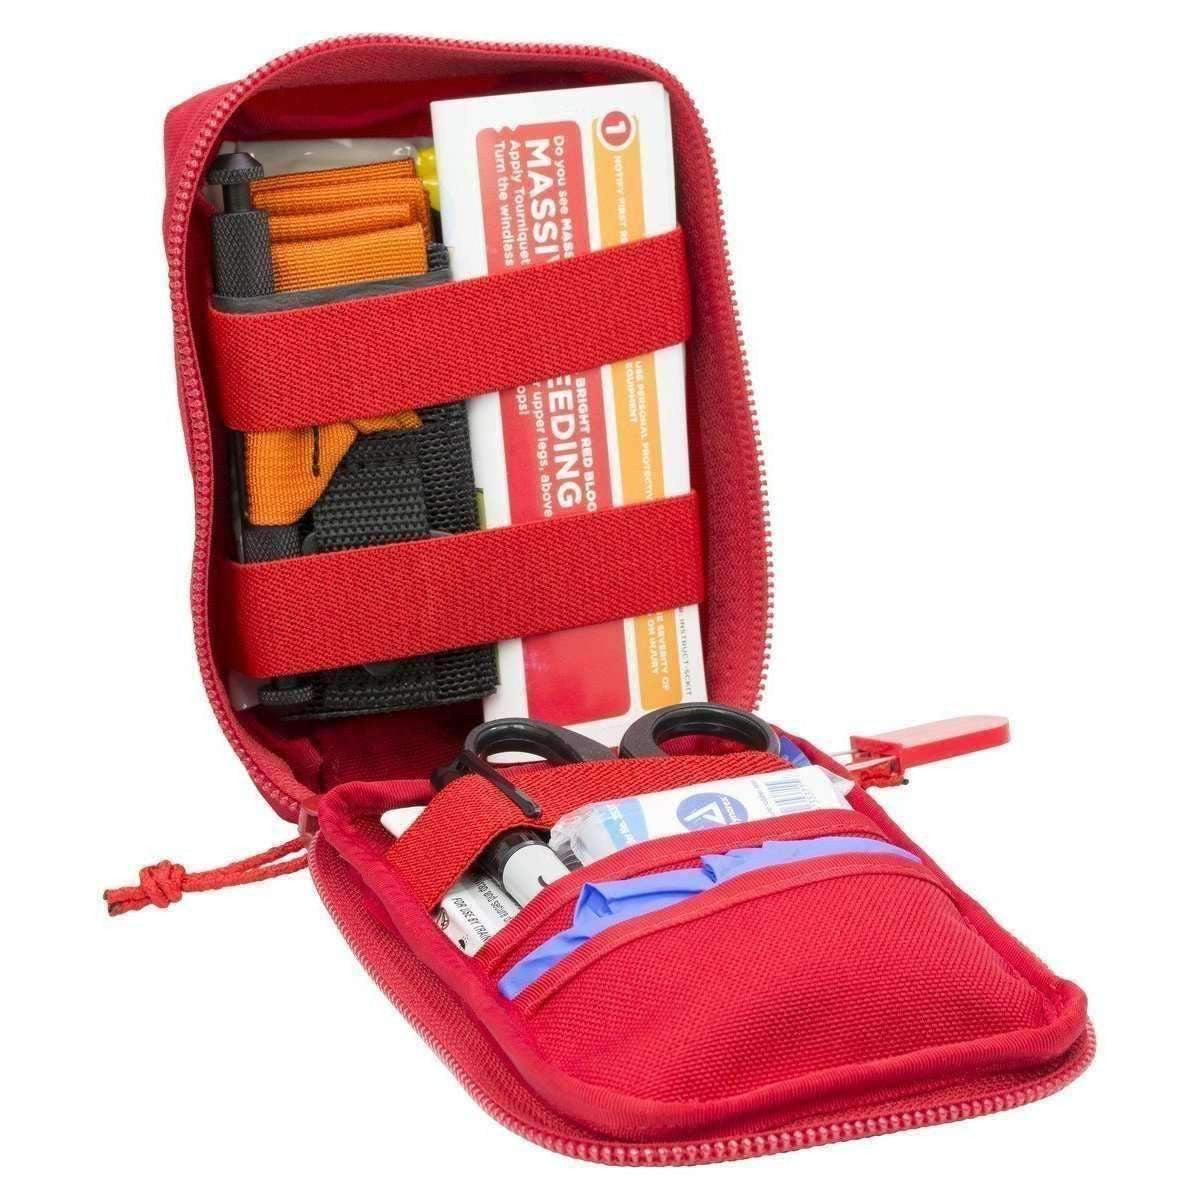 TRAMEDIC Bleeding Control Kit for Schools - MED-TAC International Corp..